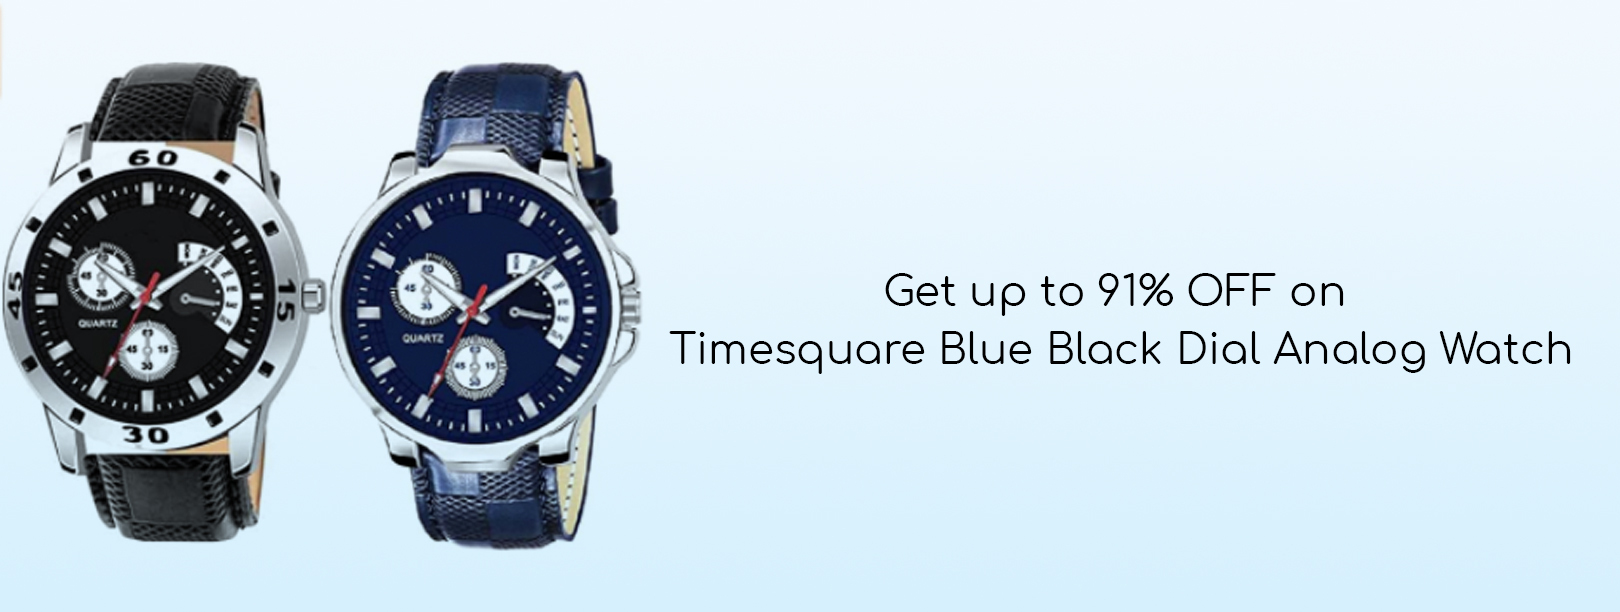 Timesquare Blue Black Dial Analog Watch